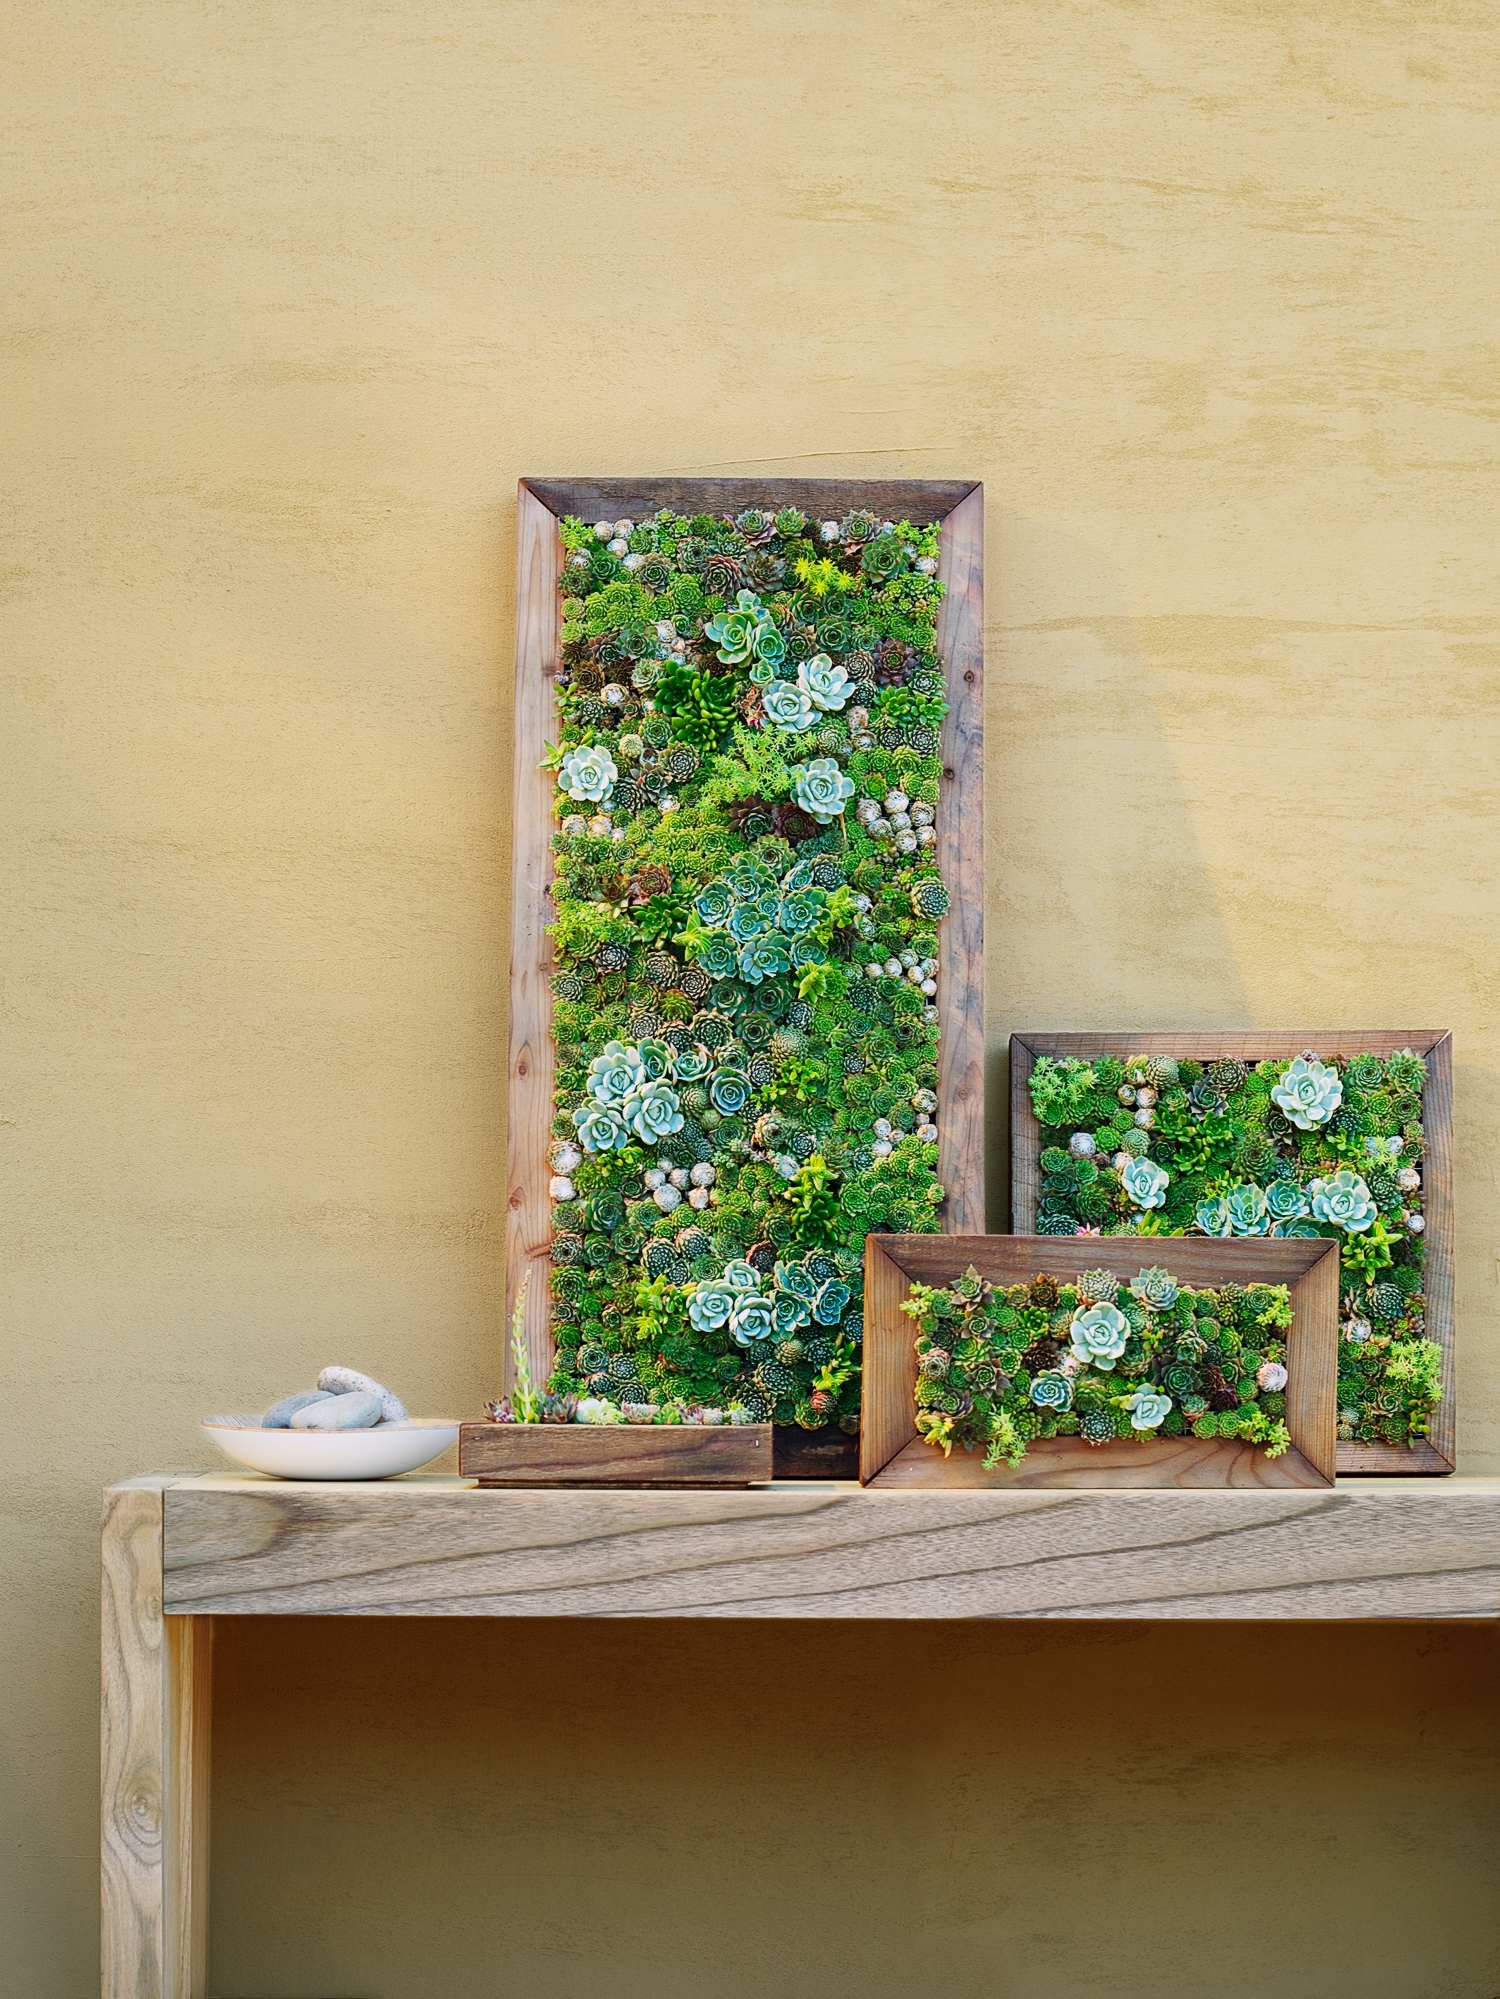 How To Make Vertical Succulent Gardens - Sunset Magazine for Succulent Wall Art (Image 7 of 20)